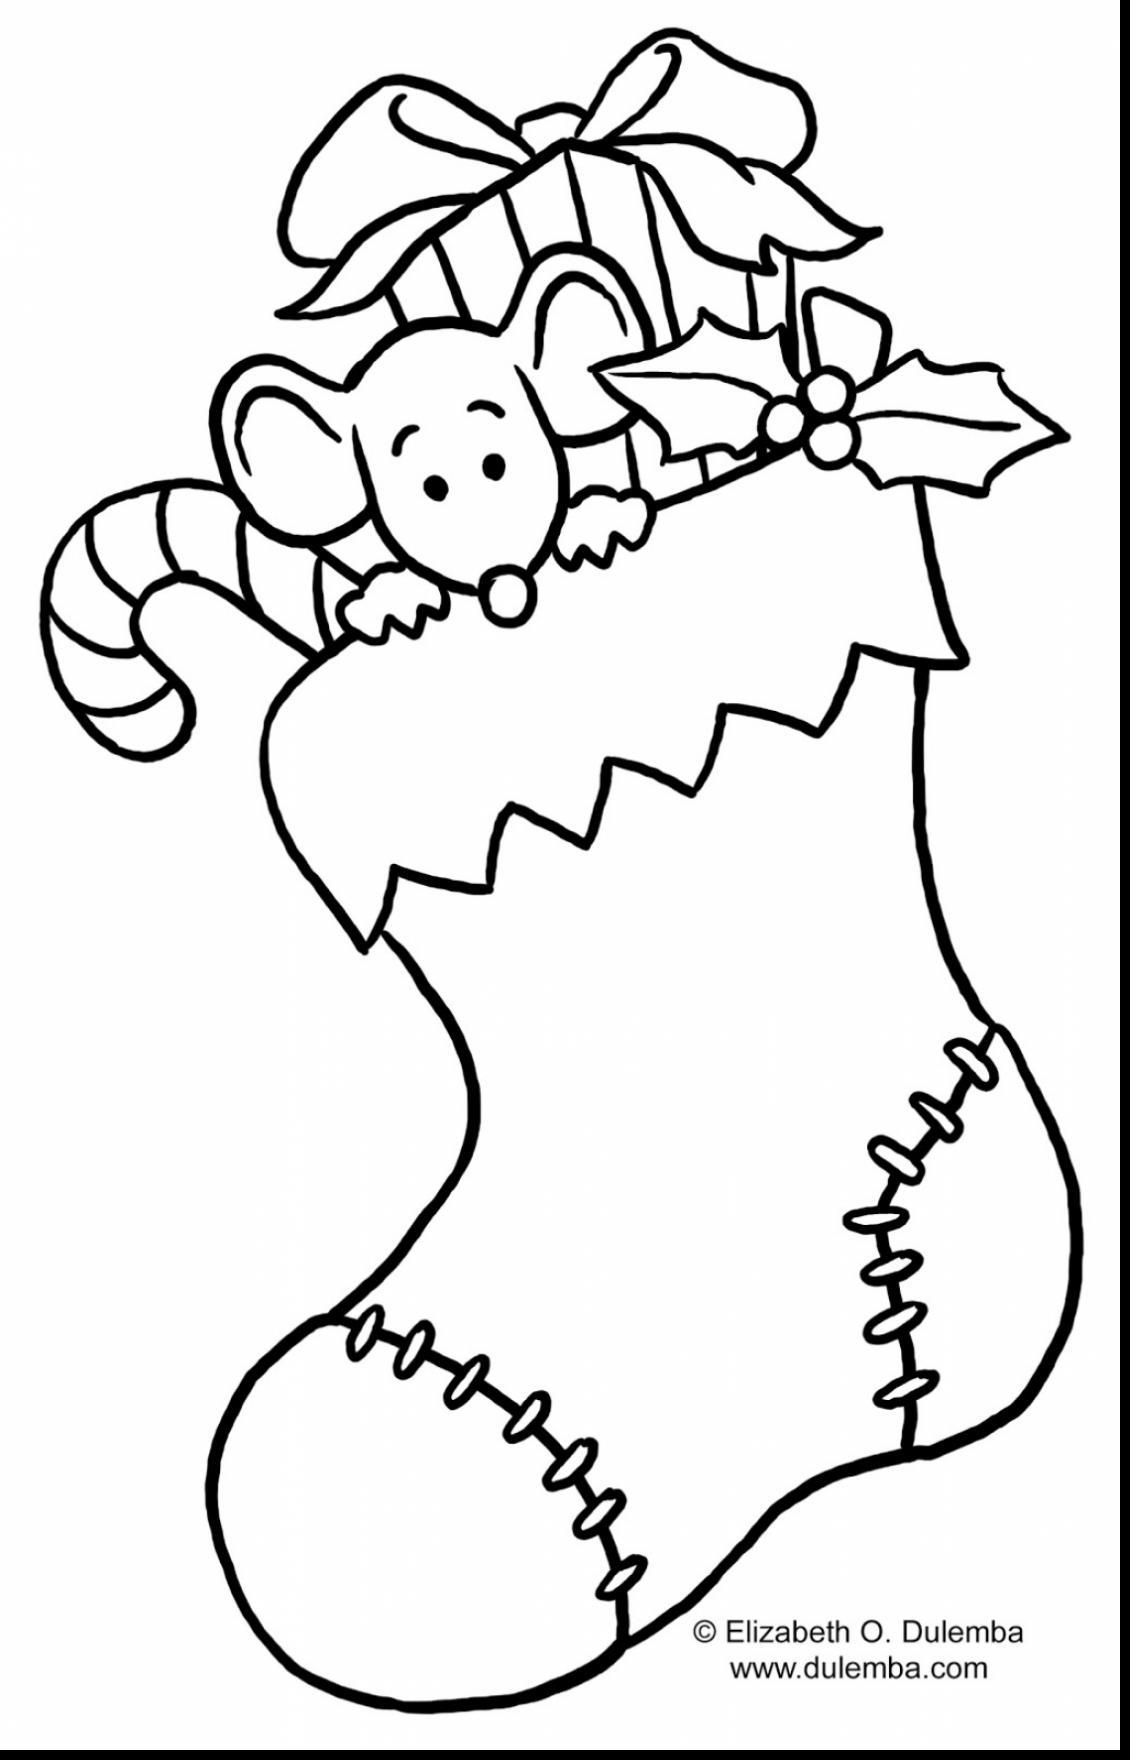 Printable Christmas Stocking Coloring Pages At